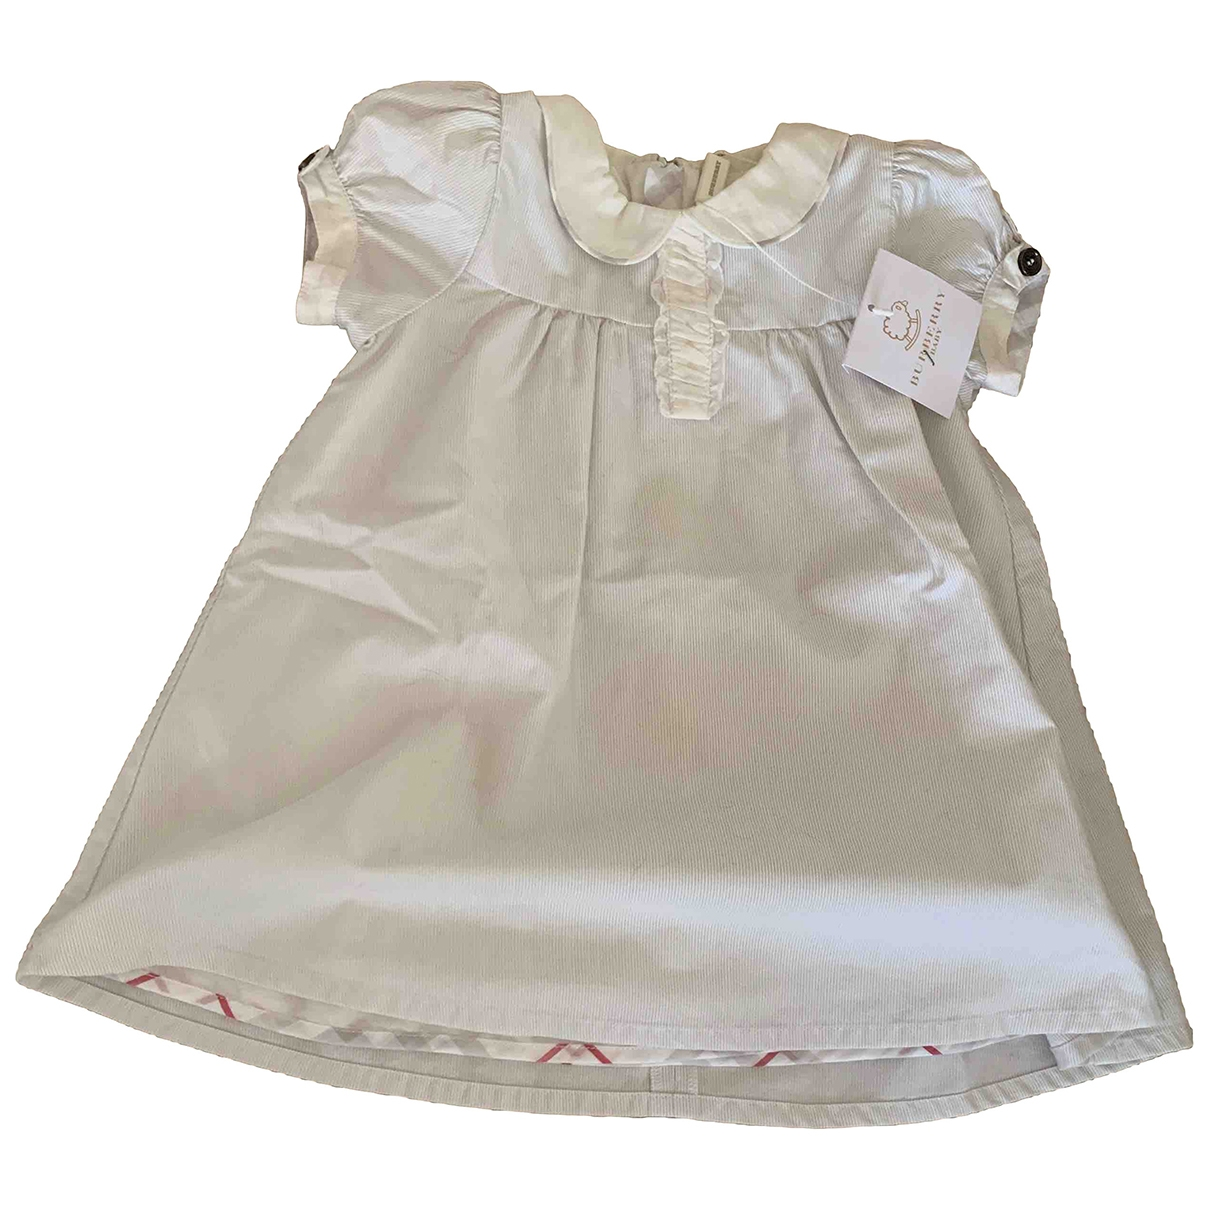 Burberry \N White Cotton dress for Kids 6 months - up to 67cm FR